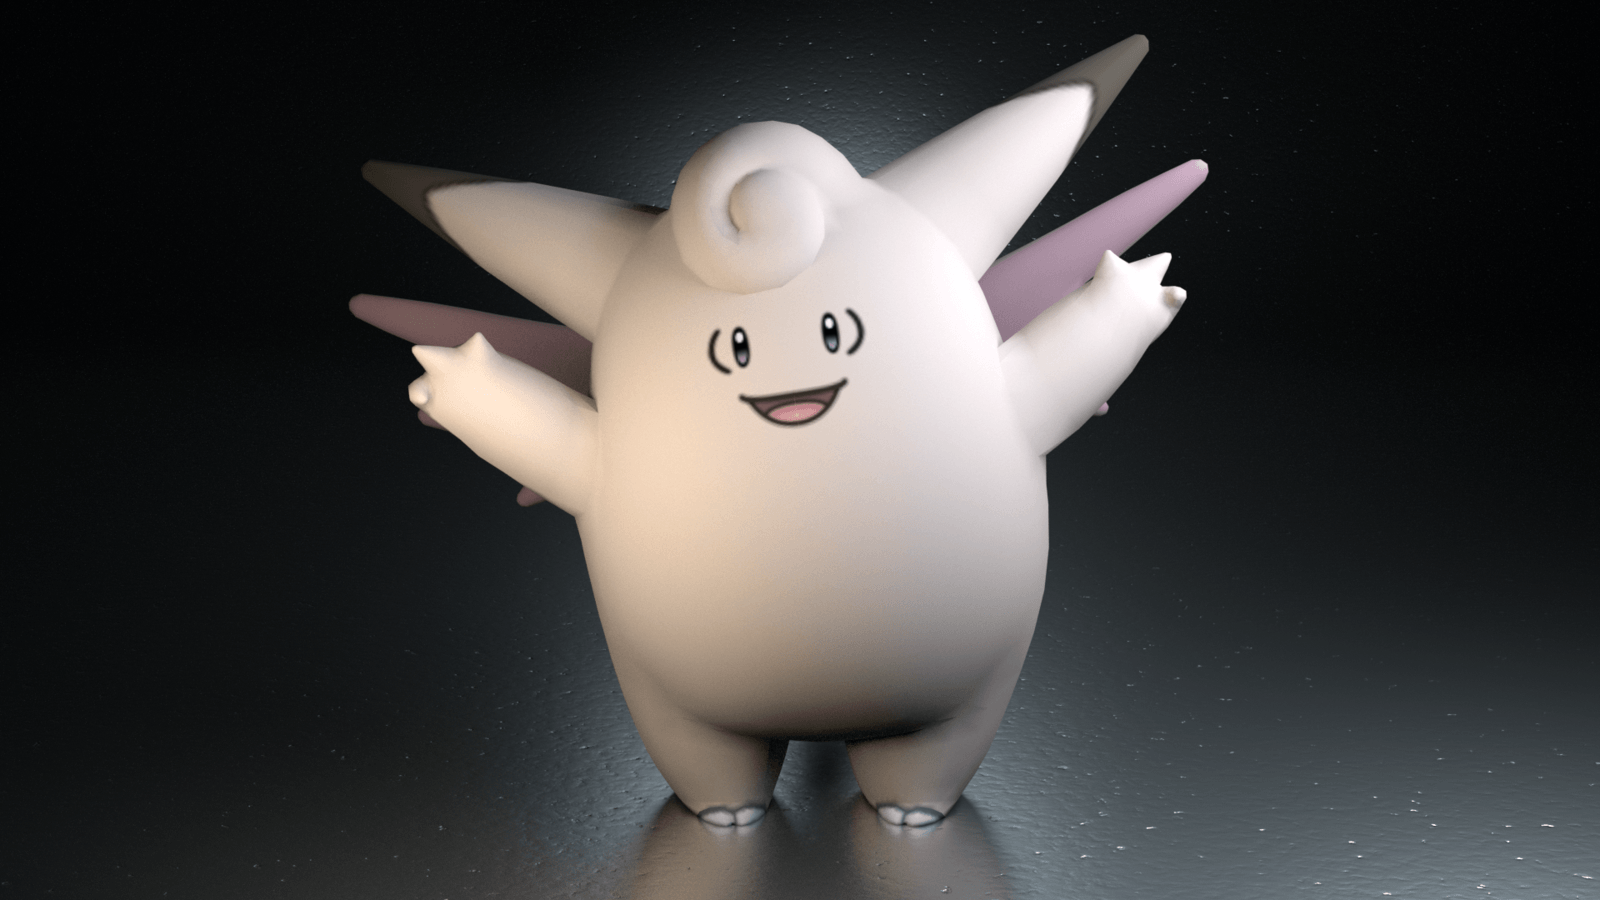 036. Clefable by TheAdorableOshawott on DeviantArt